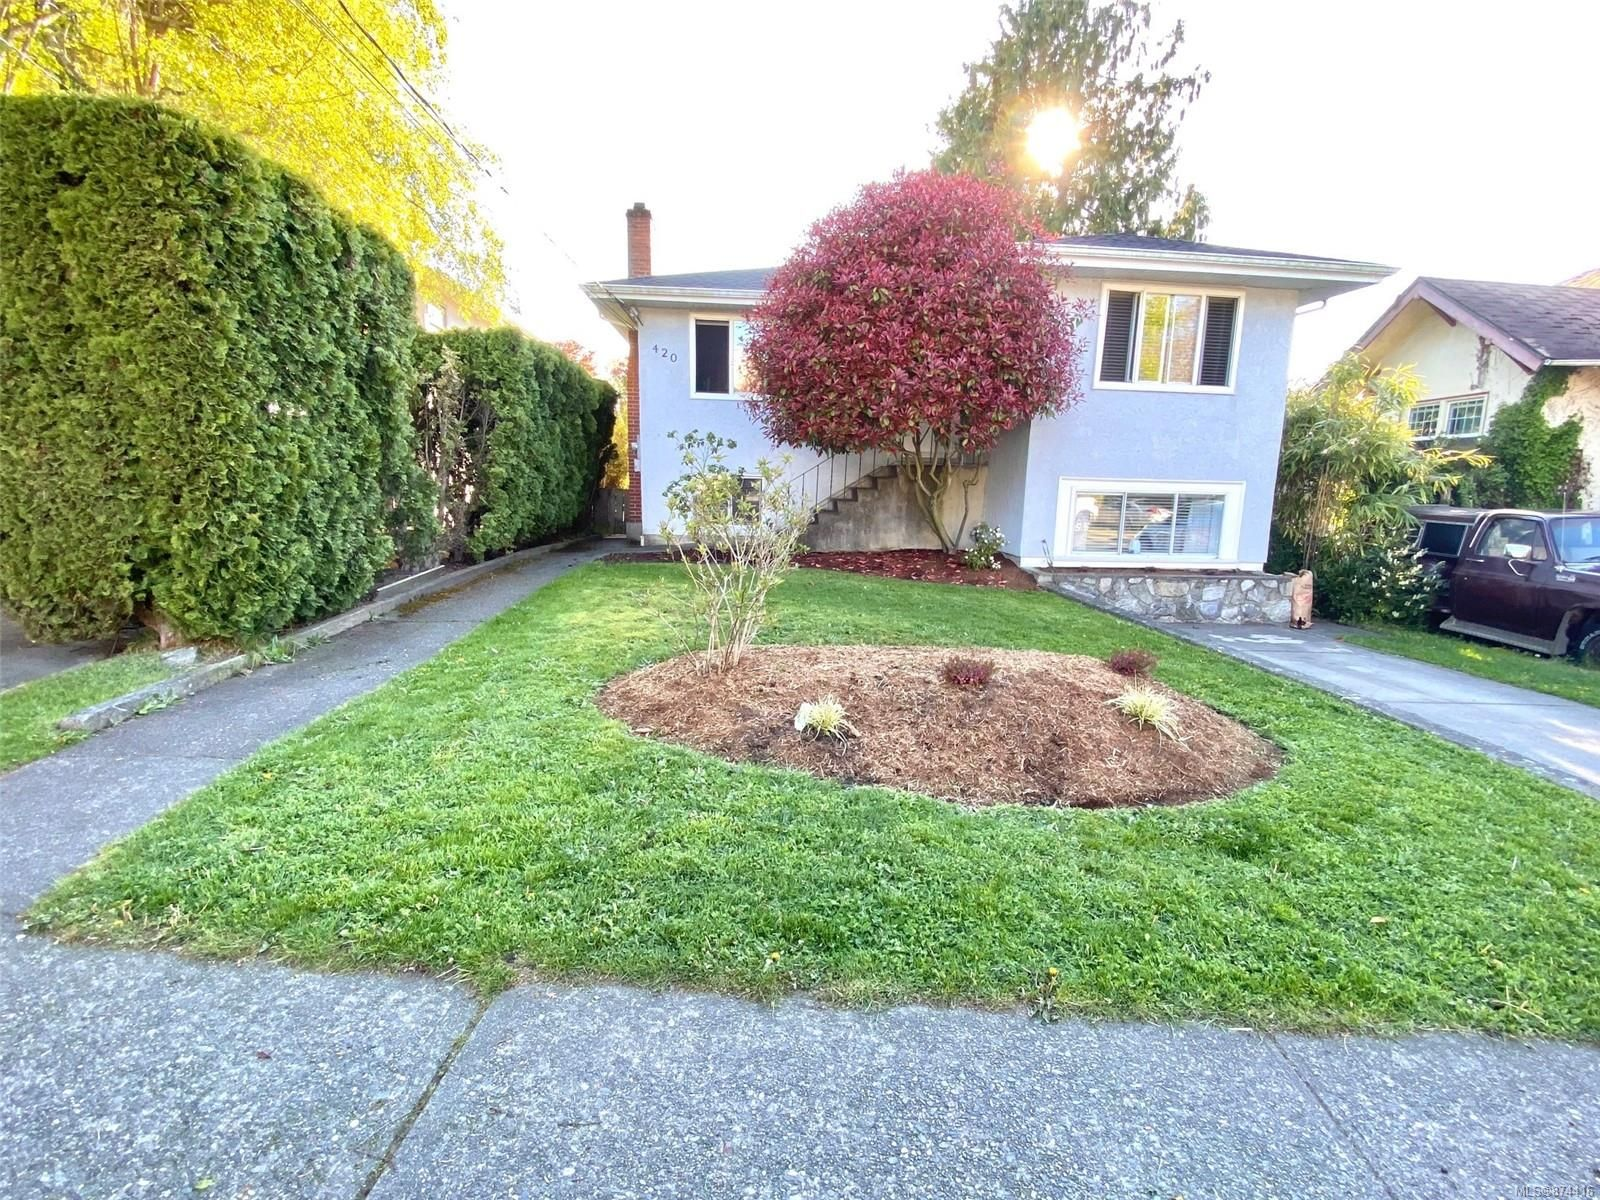 Main Photo: 420 Richmond Ave in : Vi Fairfield East House for sale (Victoria)  : MLS®# 874416